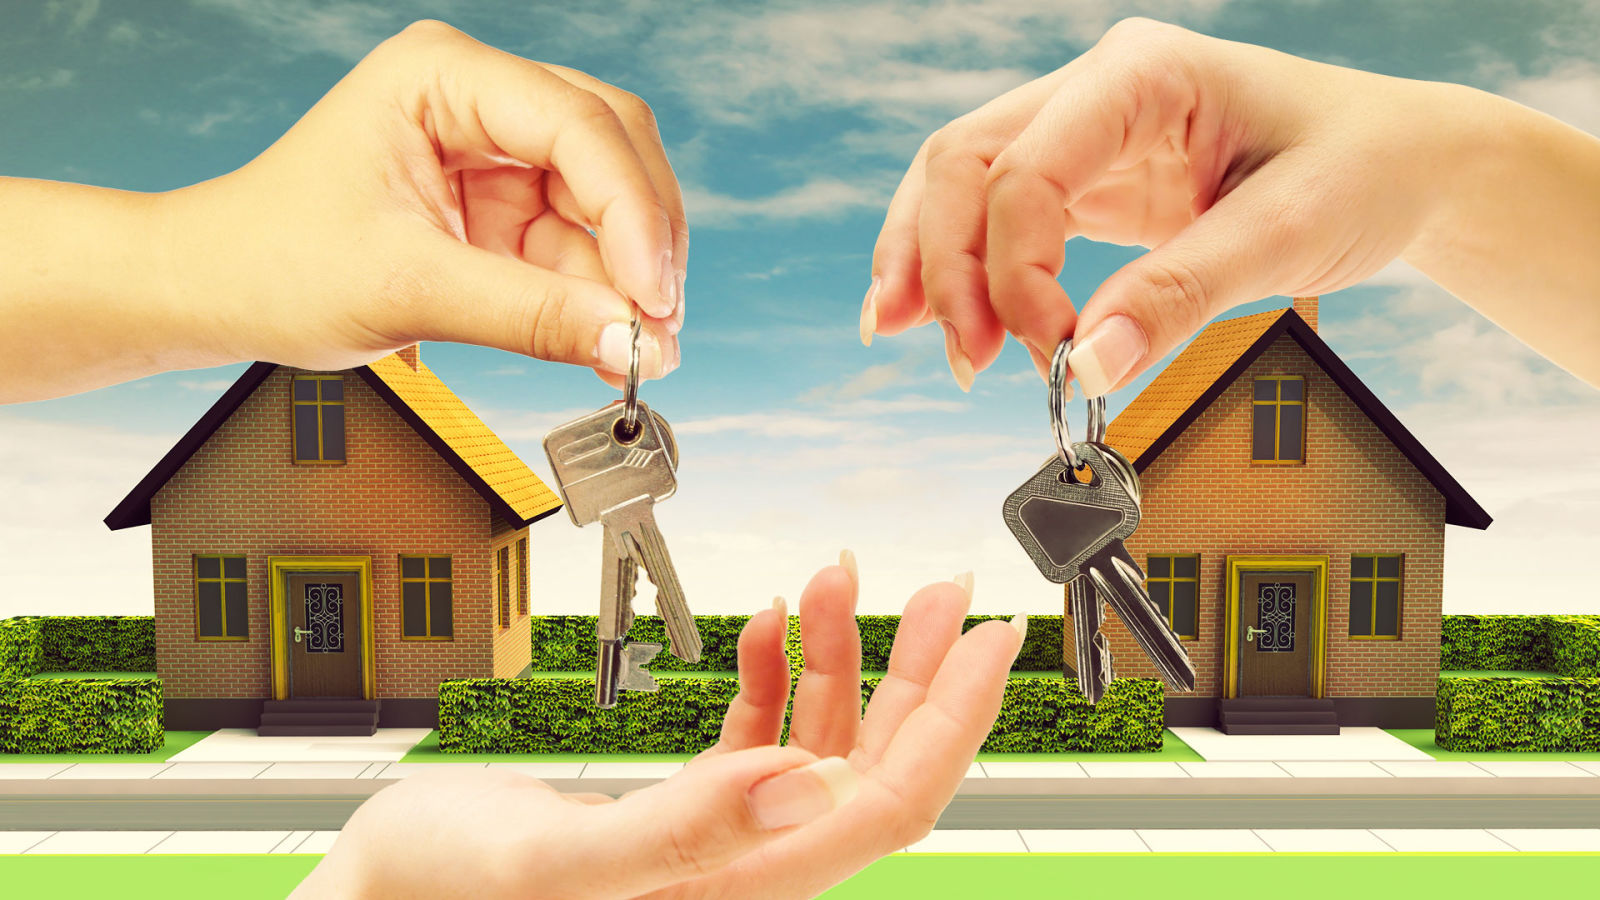 Closing Costs When Buying a House in Ontario